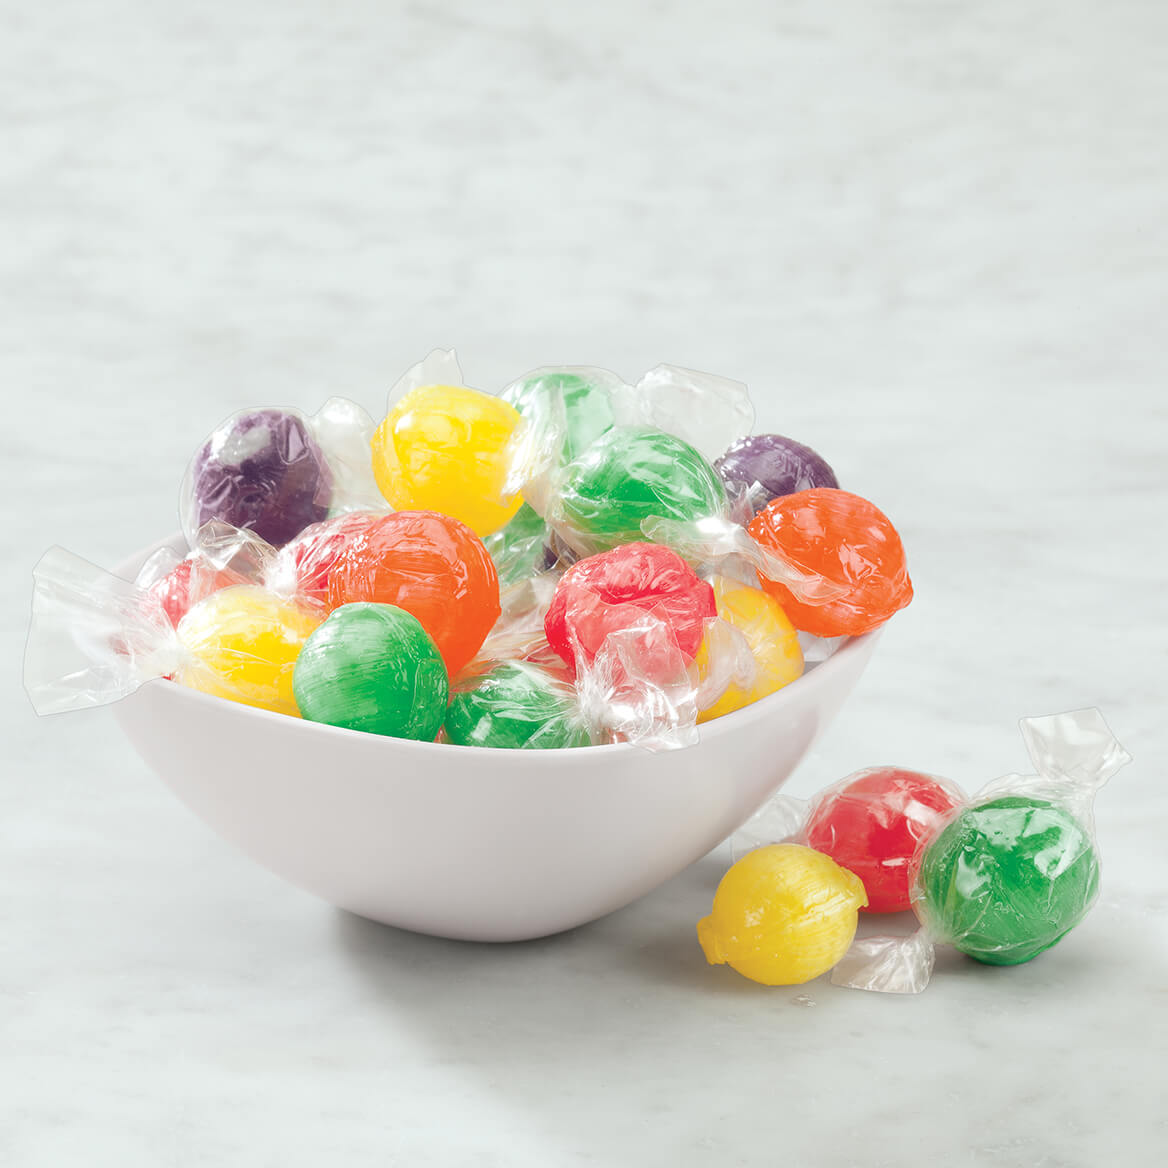 Fruity Sour Balls, 18 oz.-364288